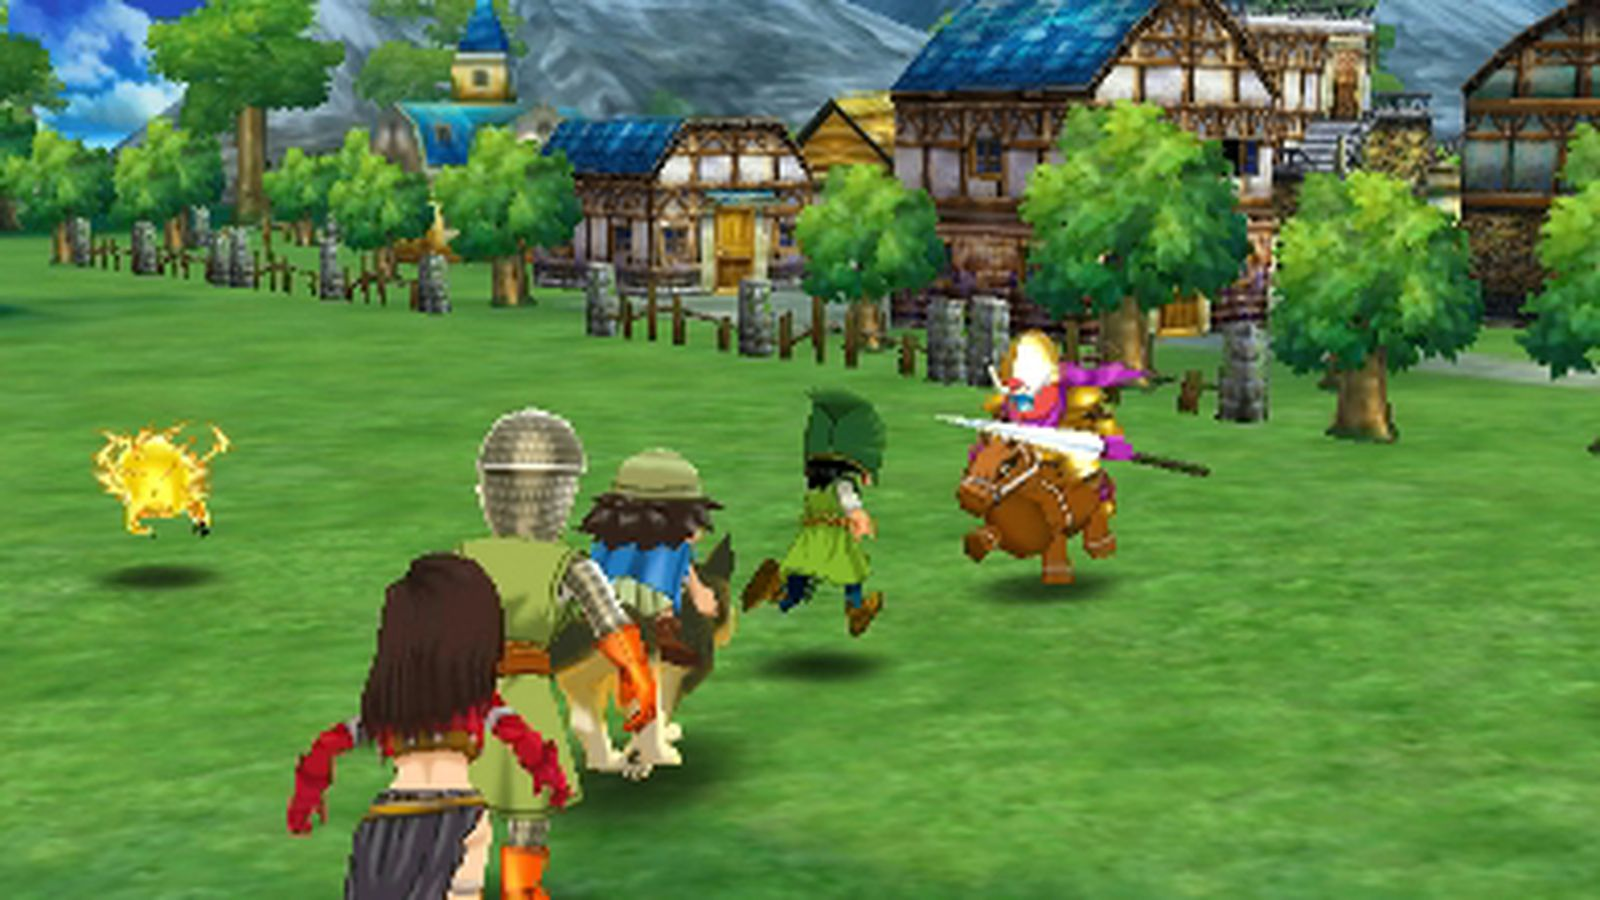 n3ds_dragonquestvii_screen_17-0-0